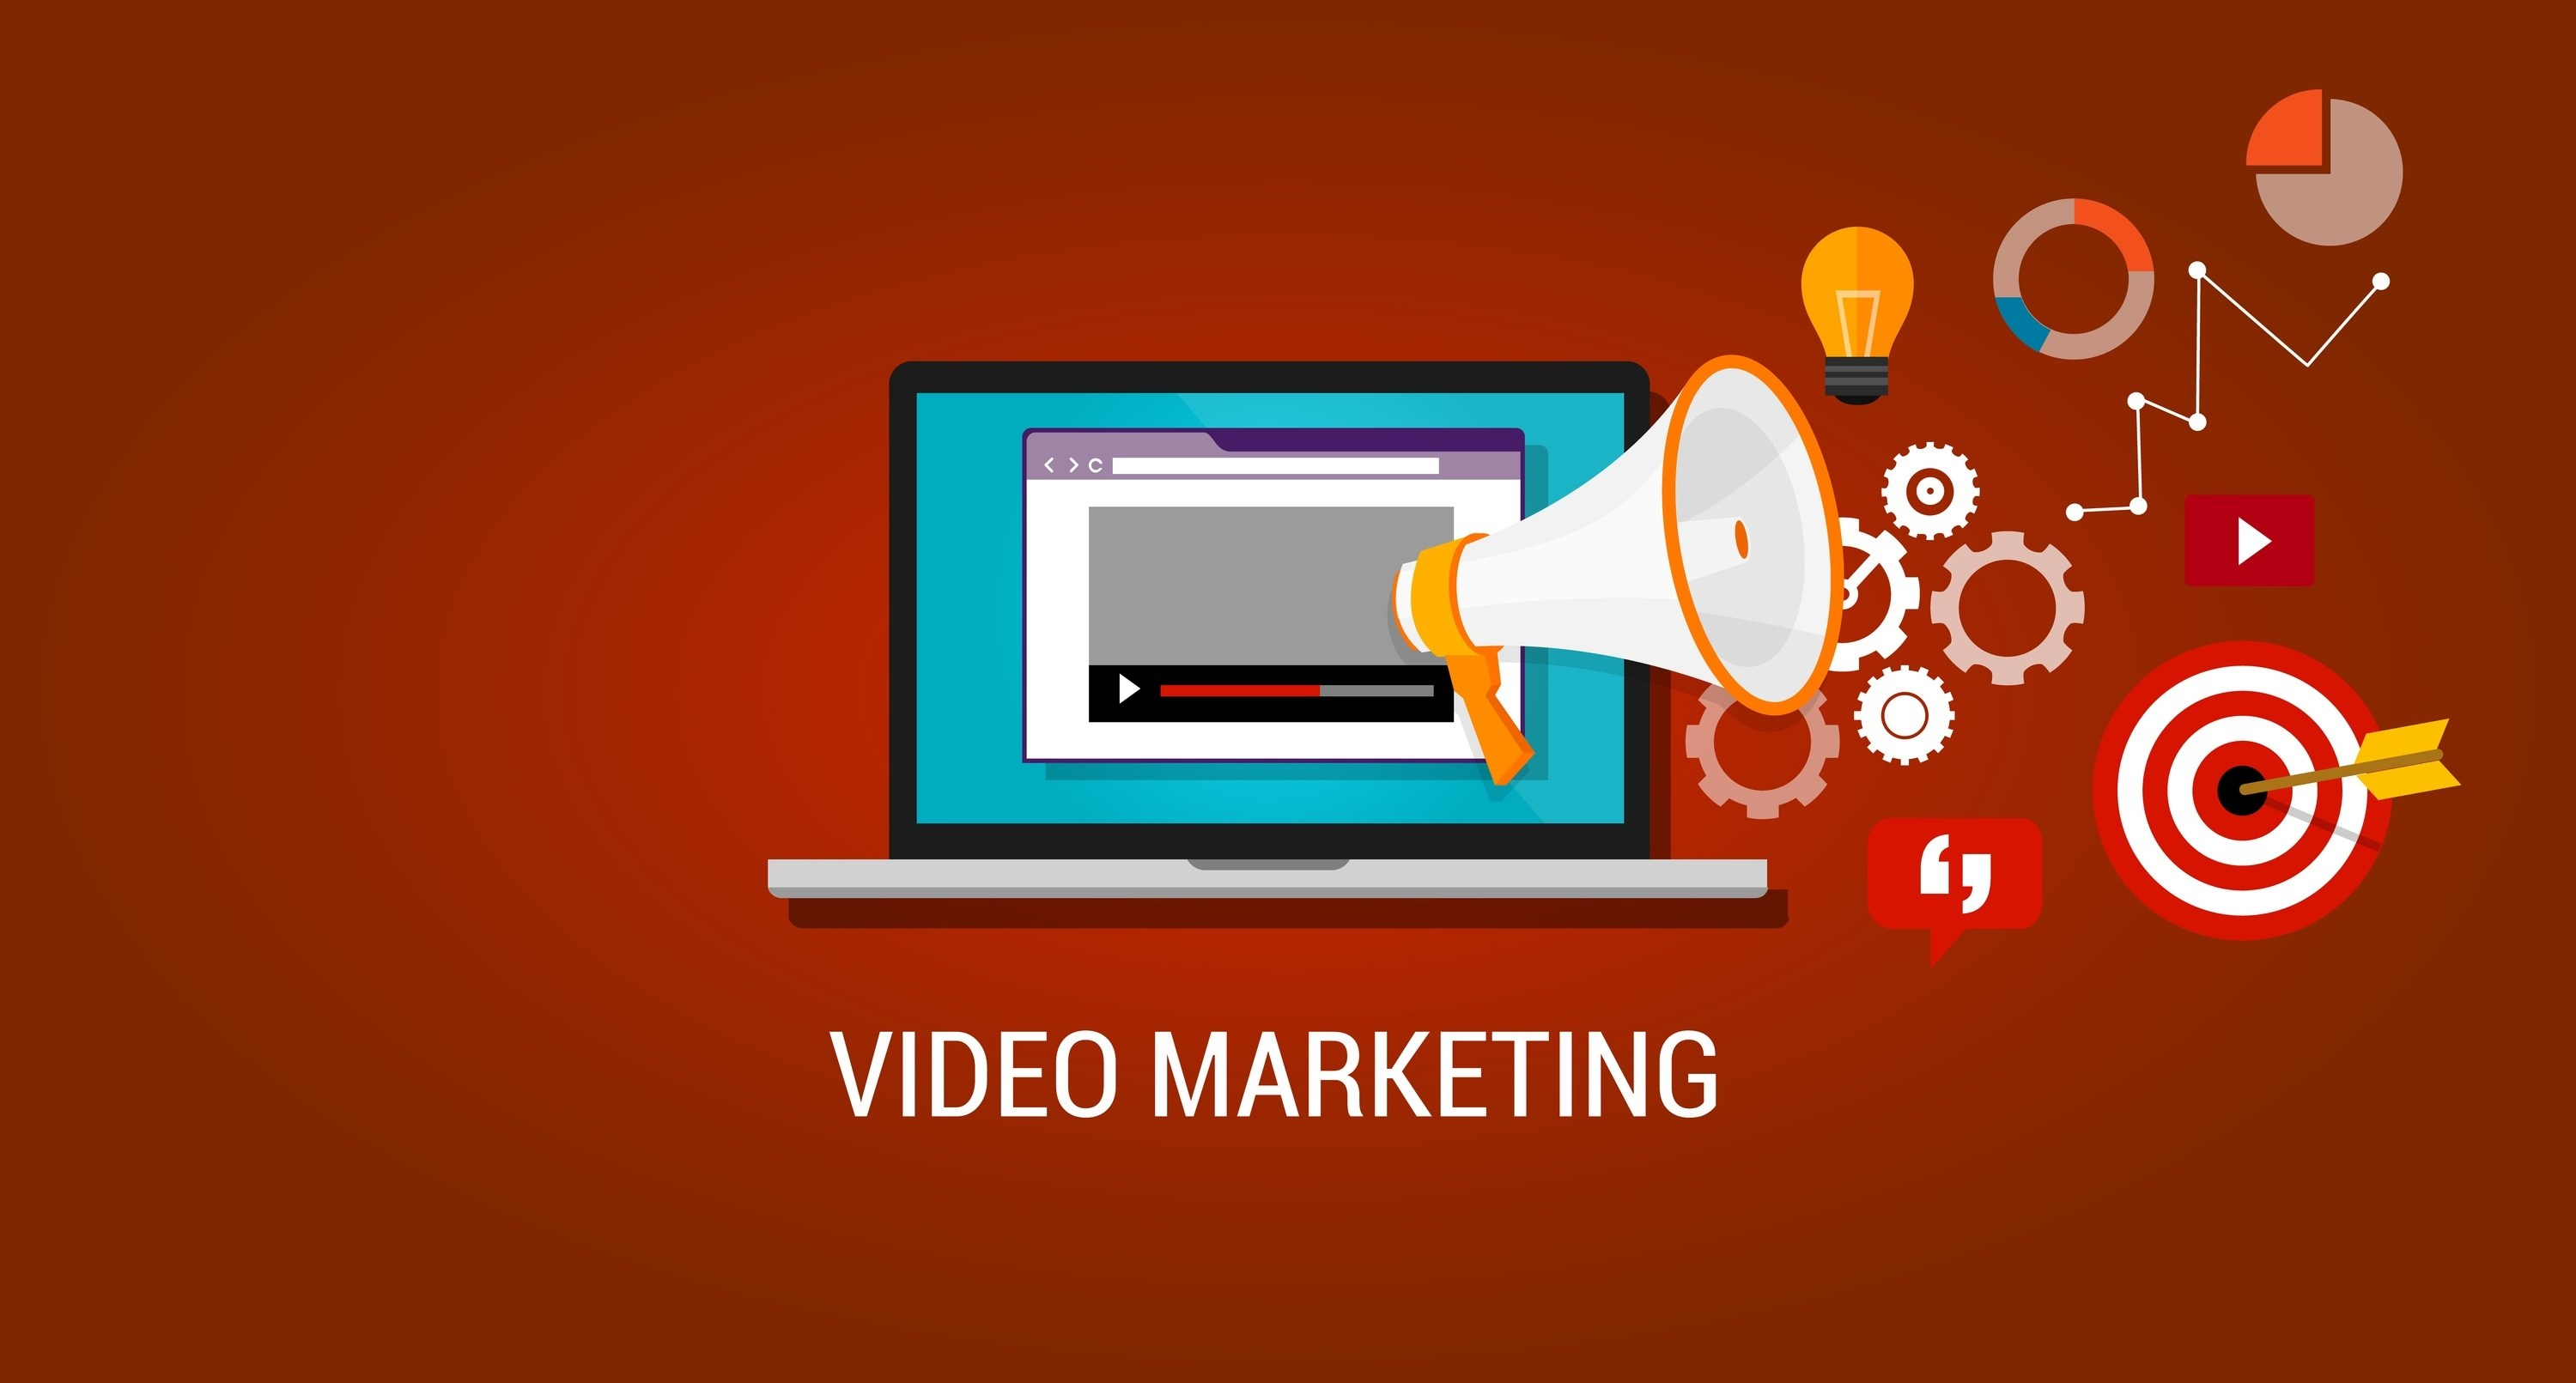 Video Marketing - 7 Tips for New-age Digital Marketing Professionals